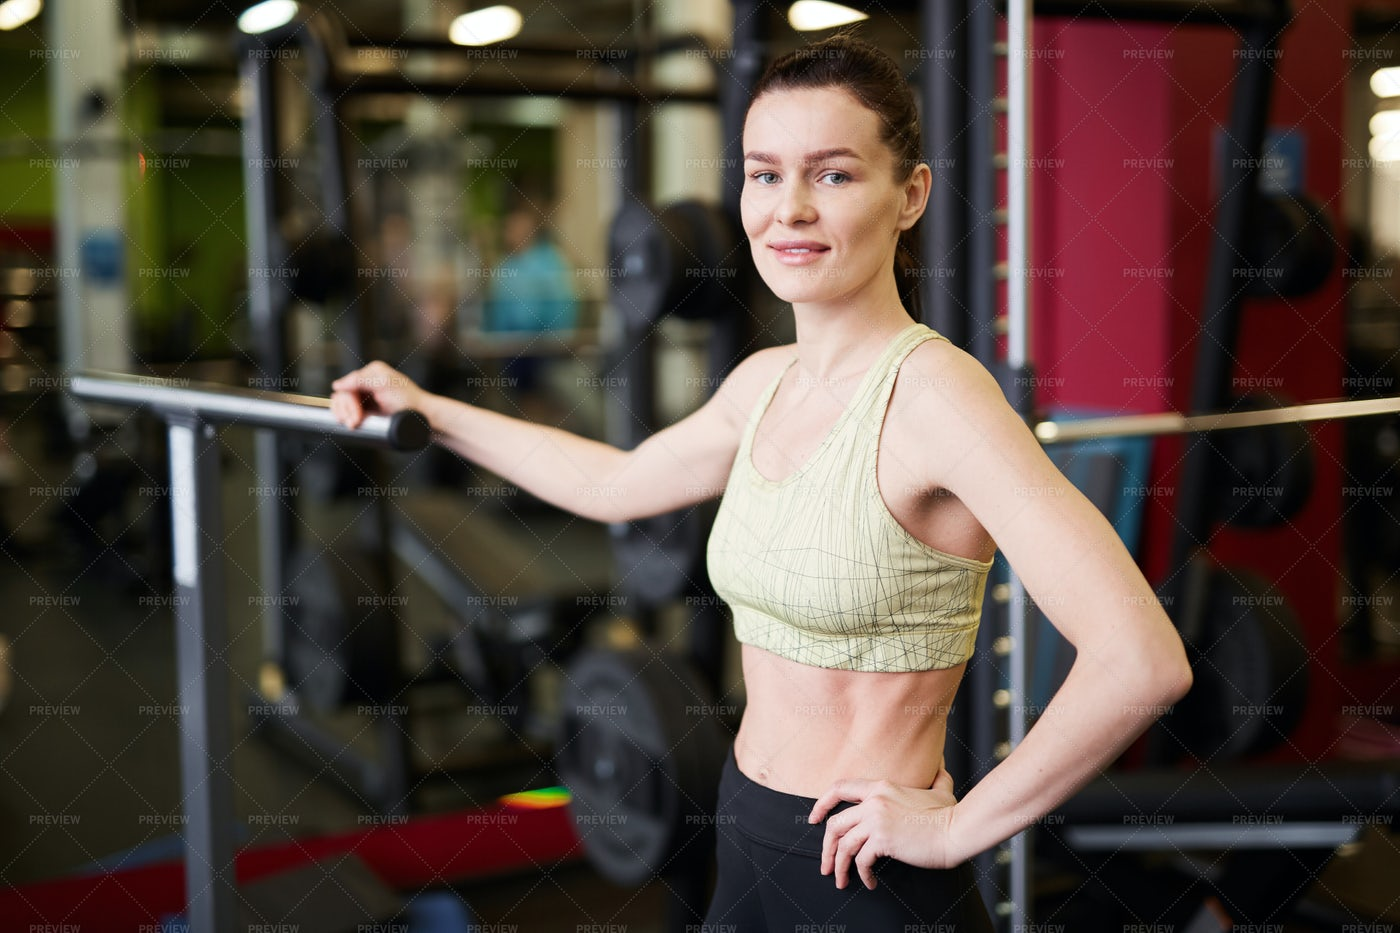 Female Fitness Coach Posing In Gym: Stock Photos